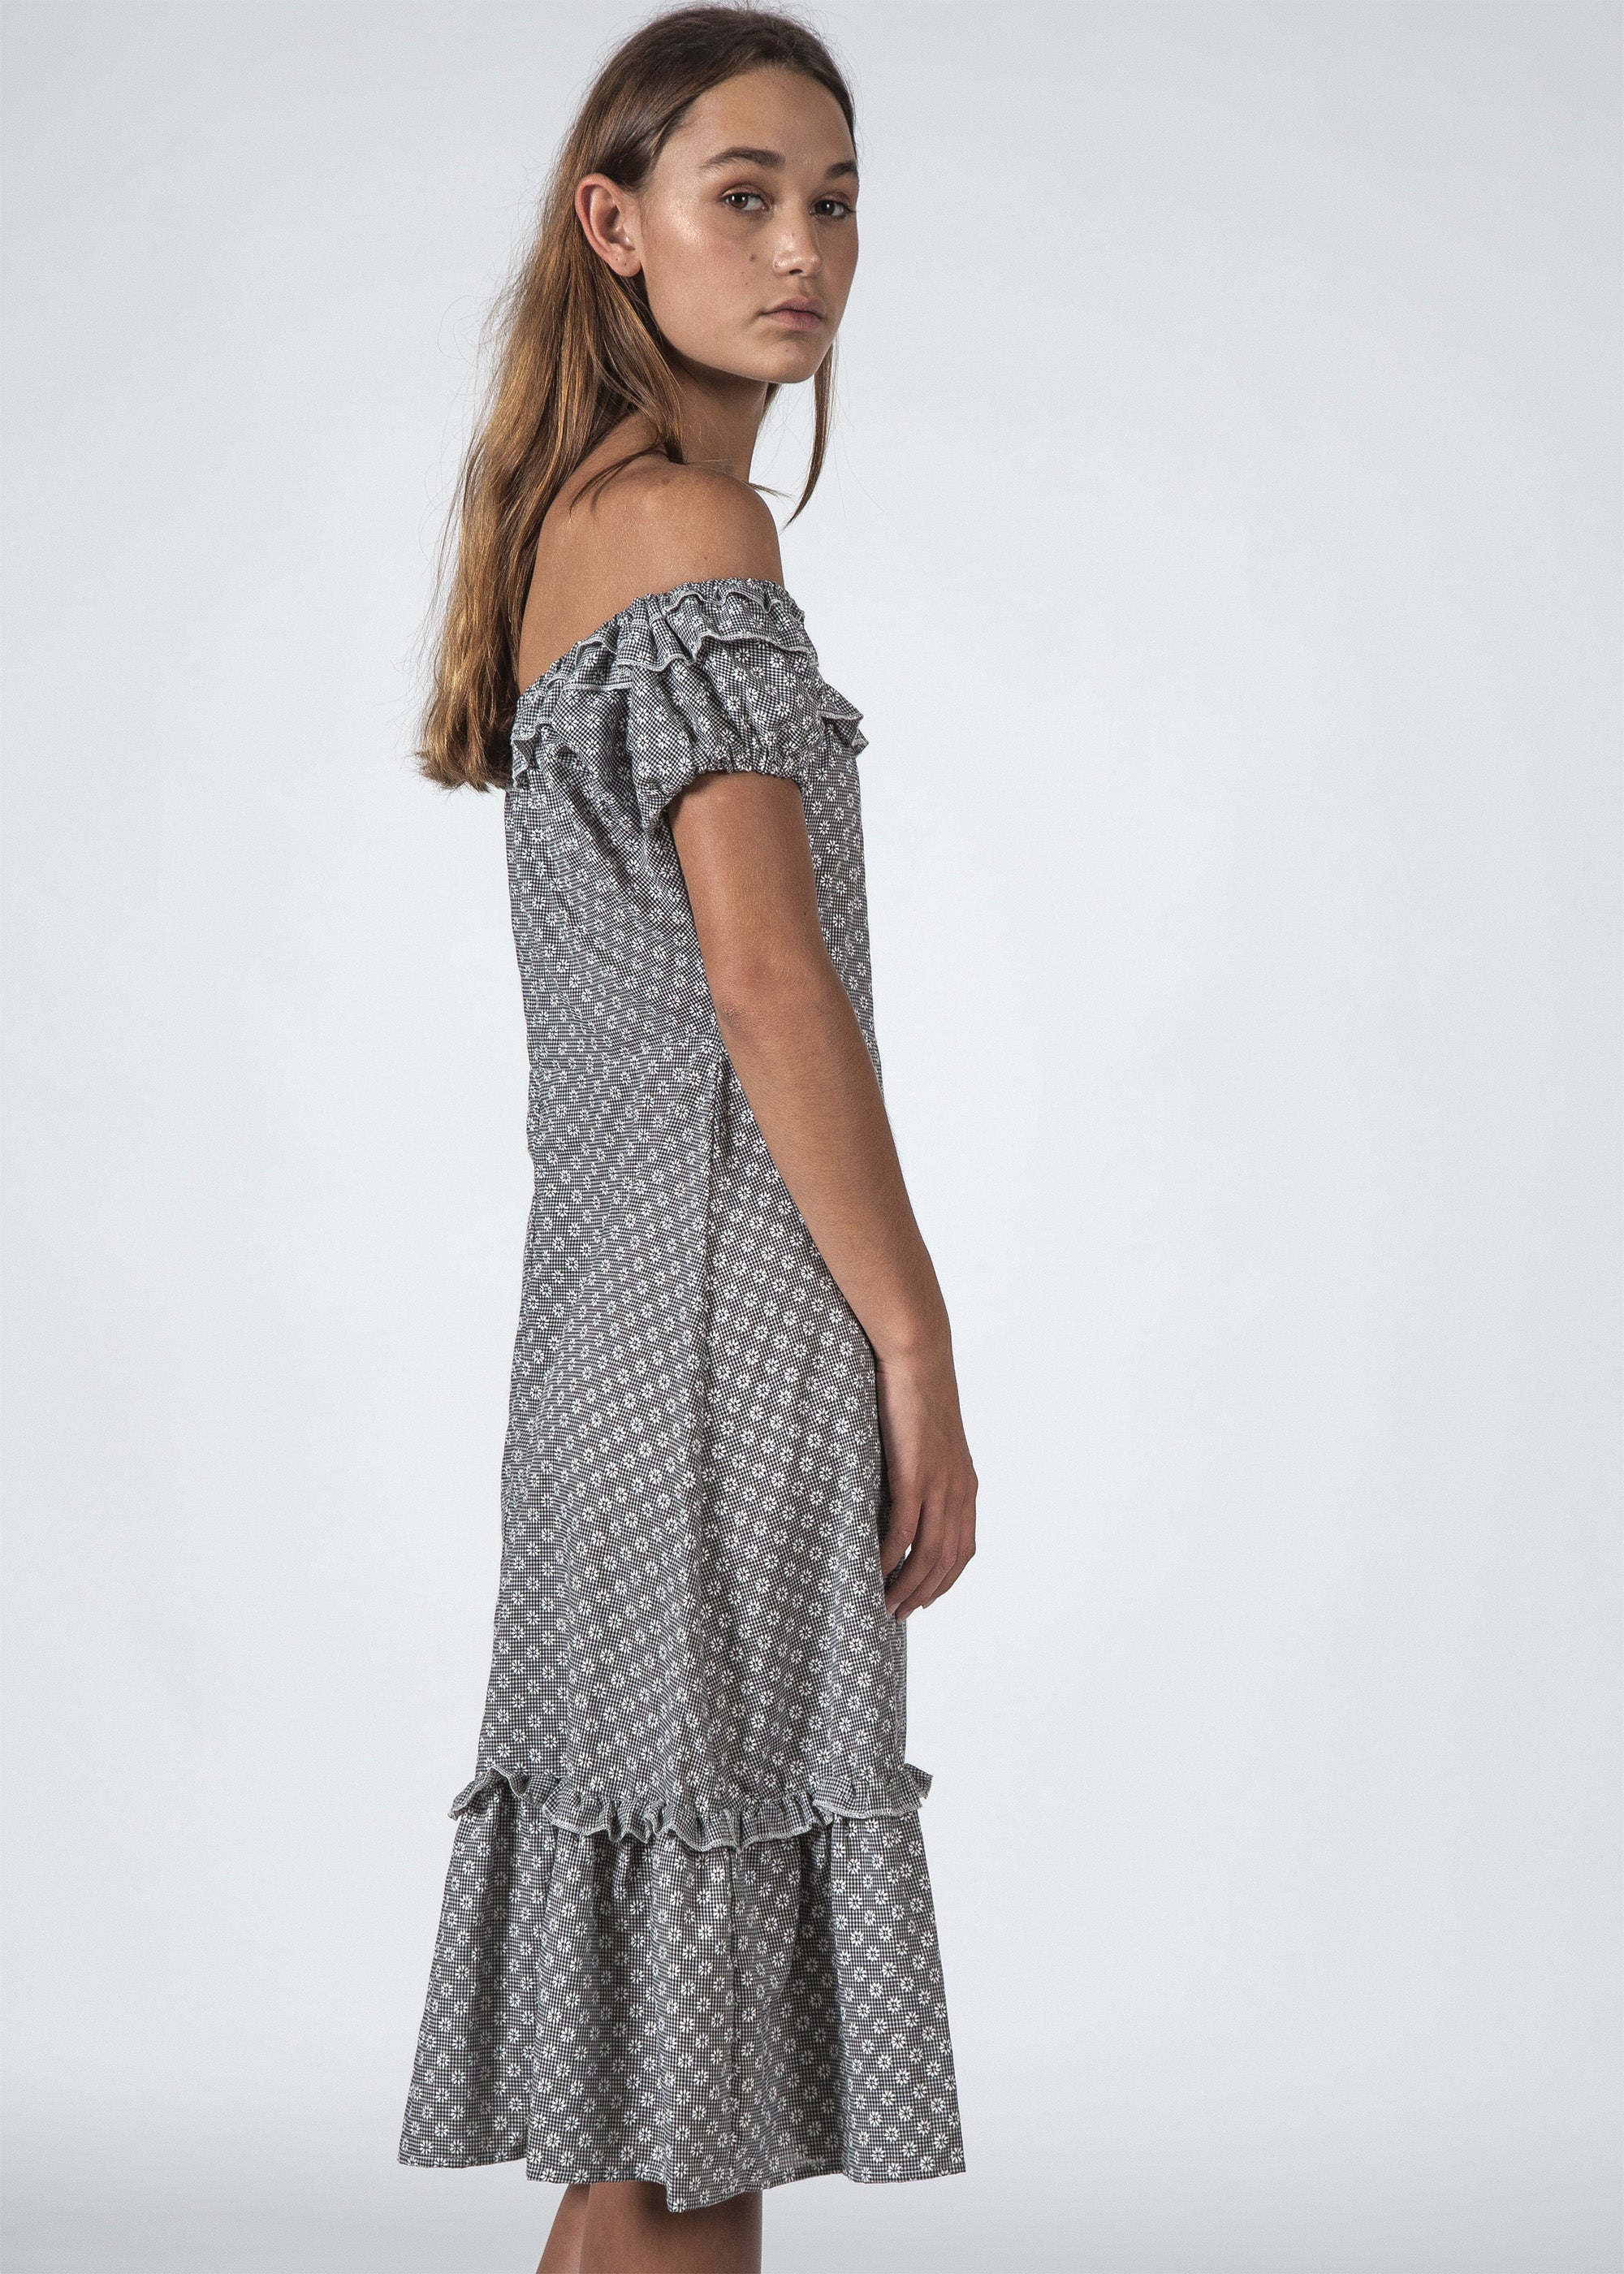 THE SUNSET DRESS DAISY CHECK